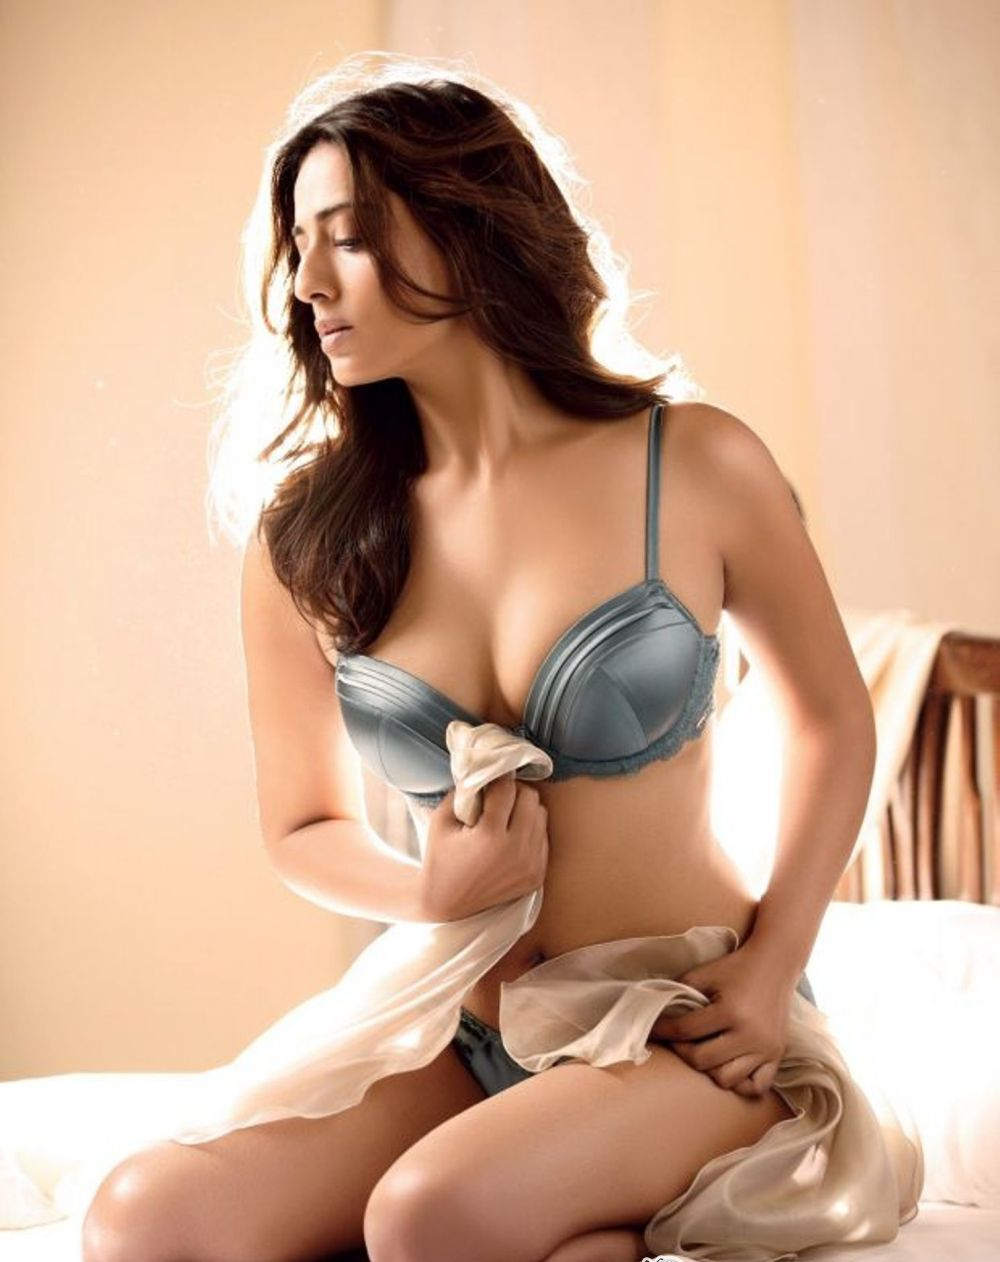 Mahie Gill in bikini, Mahie Gill sexy legs, Mahie Gill thunder thighs, Mahie Gill hottest hd wallpaper, Mahie Gill spicy photos, Mahie Gill in tight dress, Mahie Gill in short dress